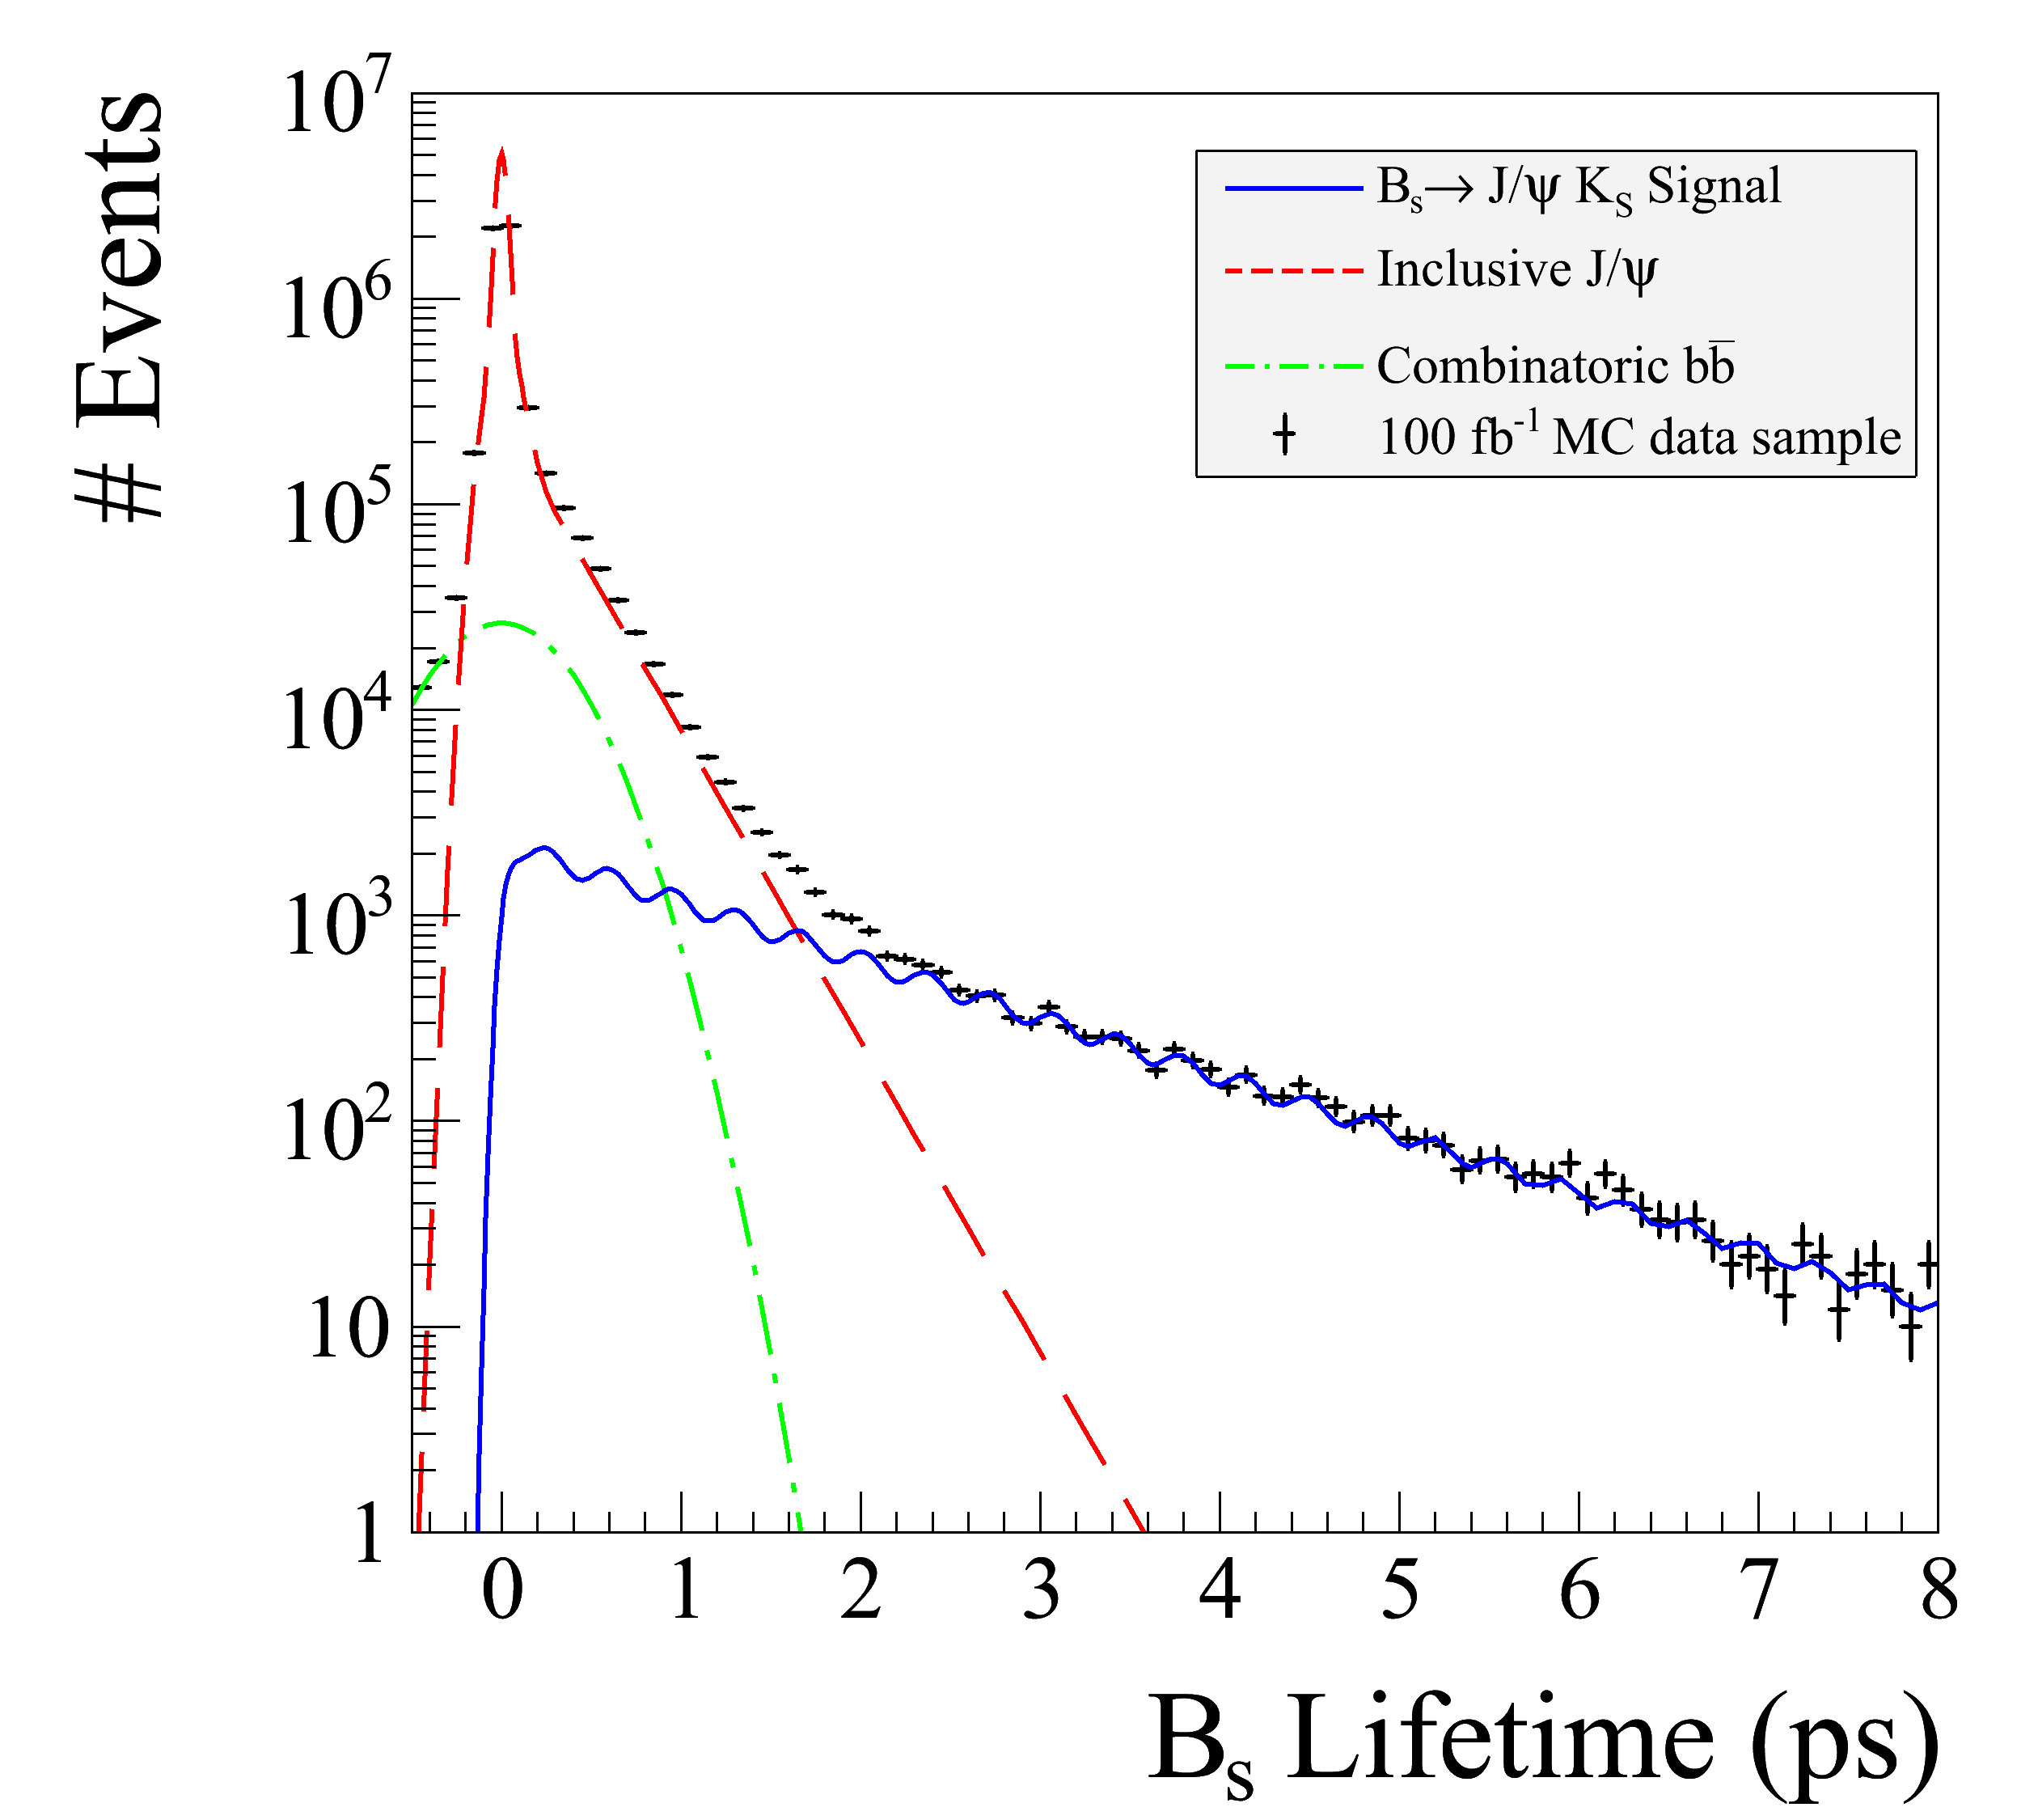 The lifetime distribution for an originally tagged